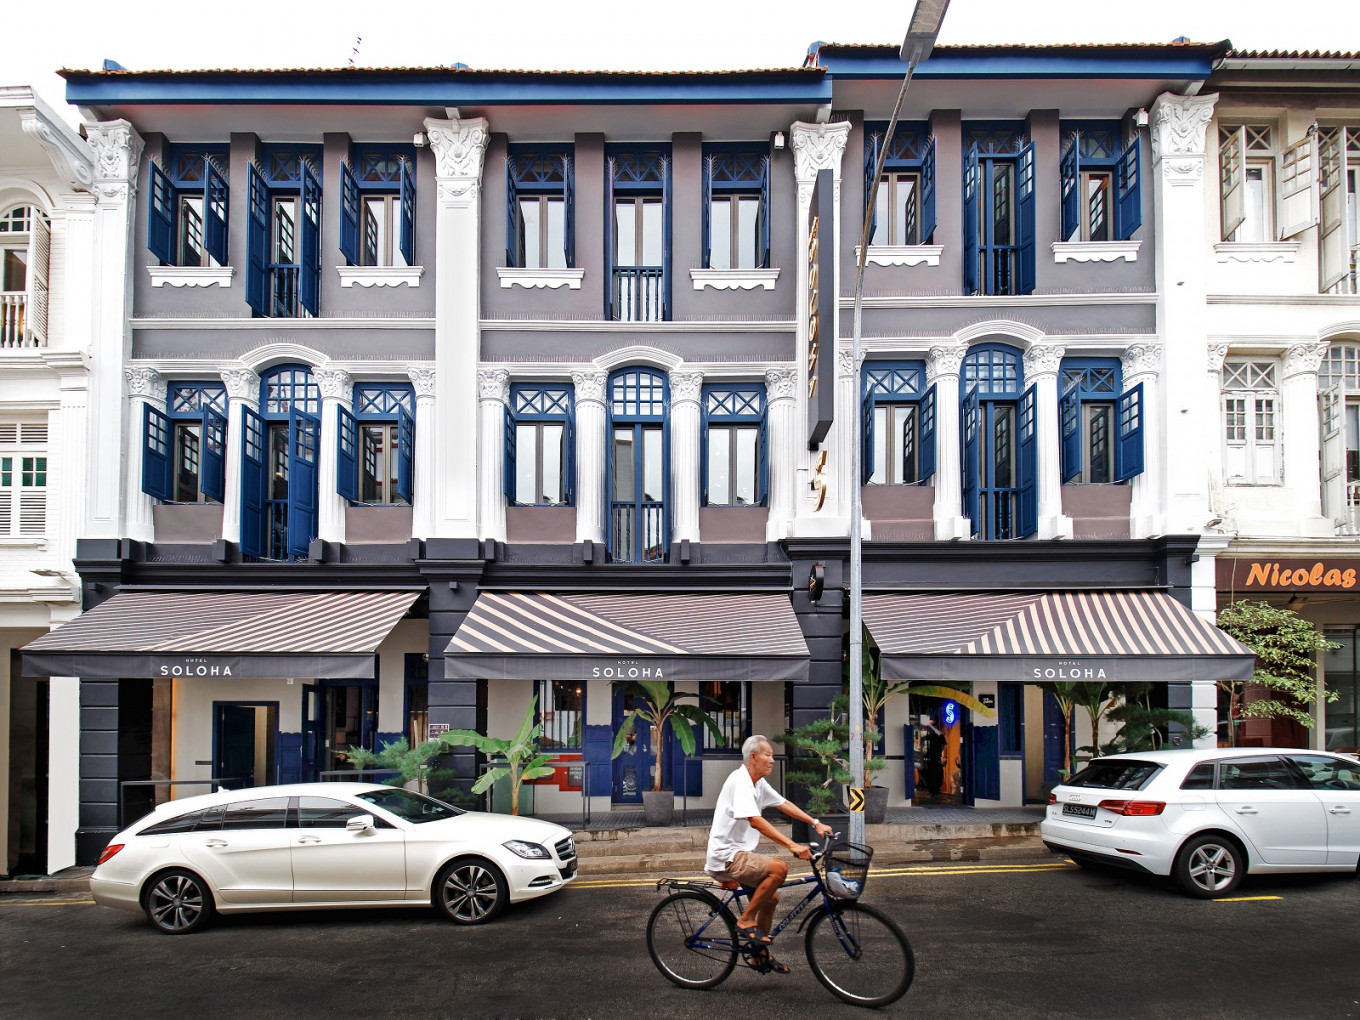 Singapore welcomes Hotel Soloha's jungle-chic aesthetic in Keong Saik